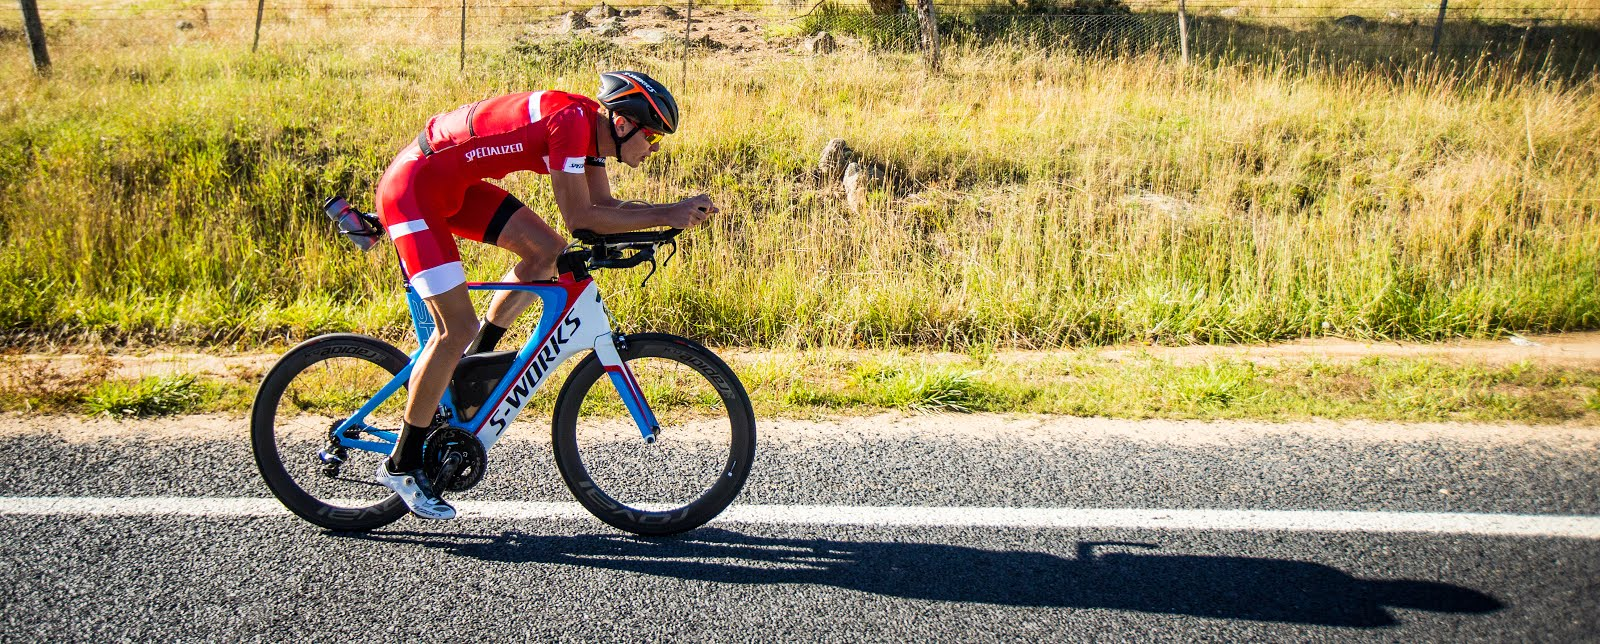 Sam Betten - Professional Triathlete